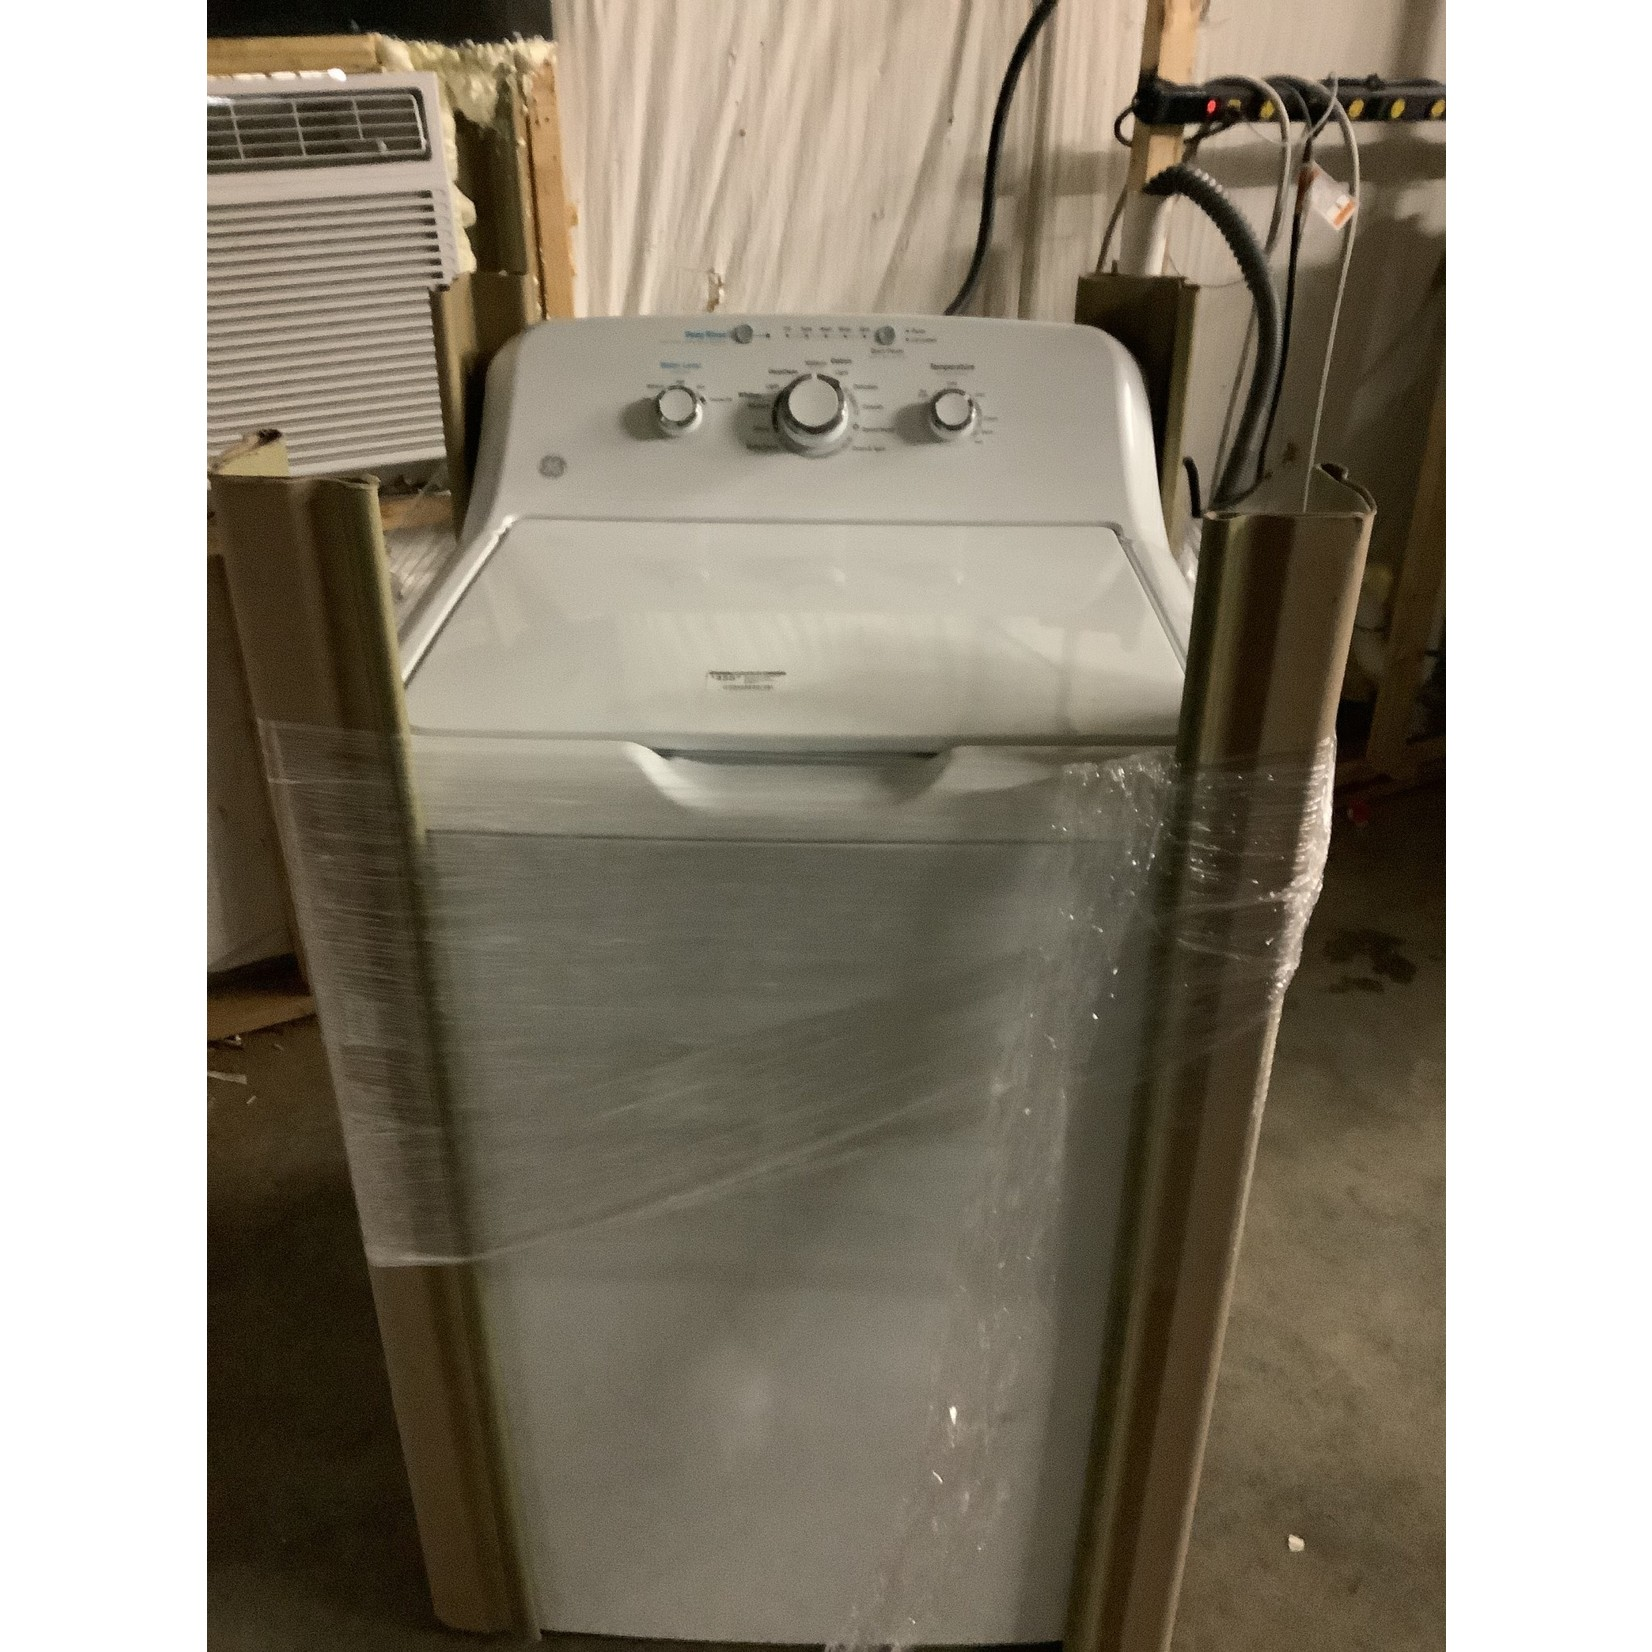 General Electric 4.2 CU.FT. CAPACITY WASHER WITH STAINLESS STEEL BASKET